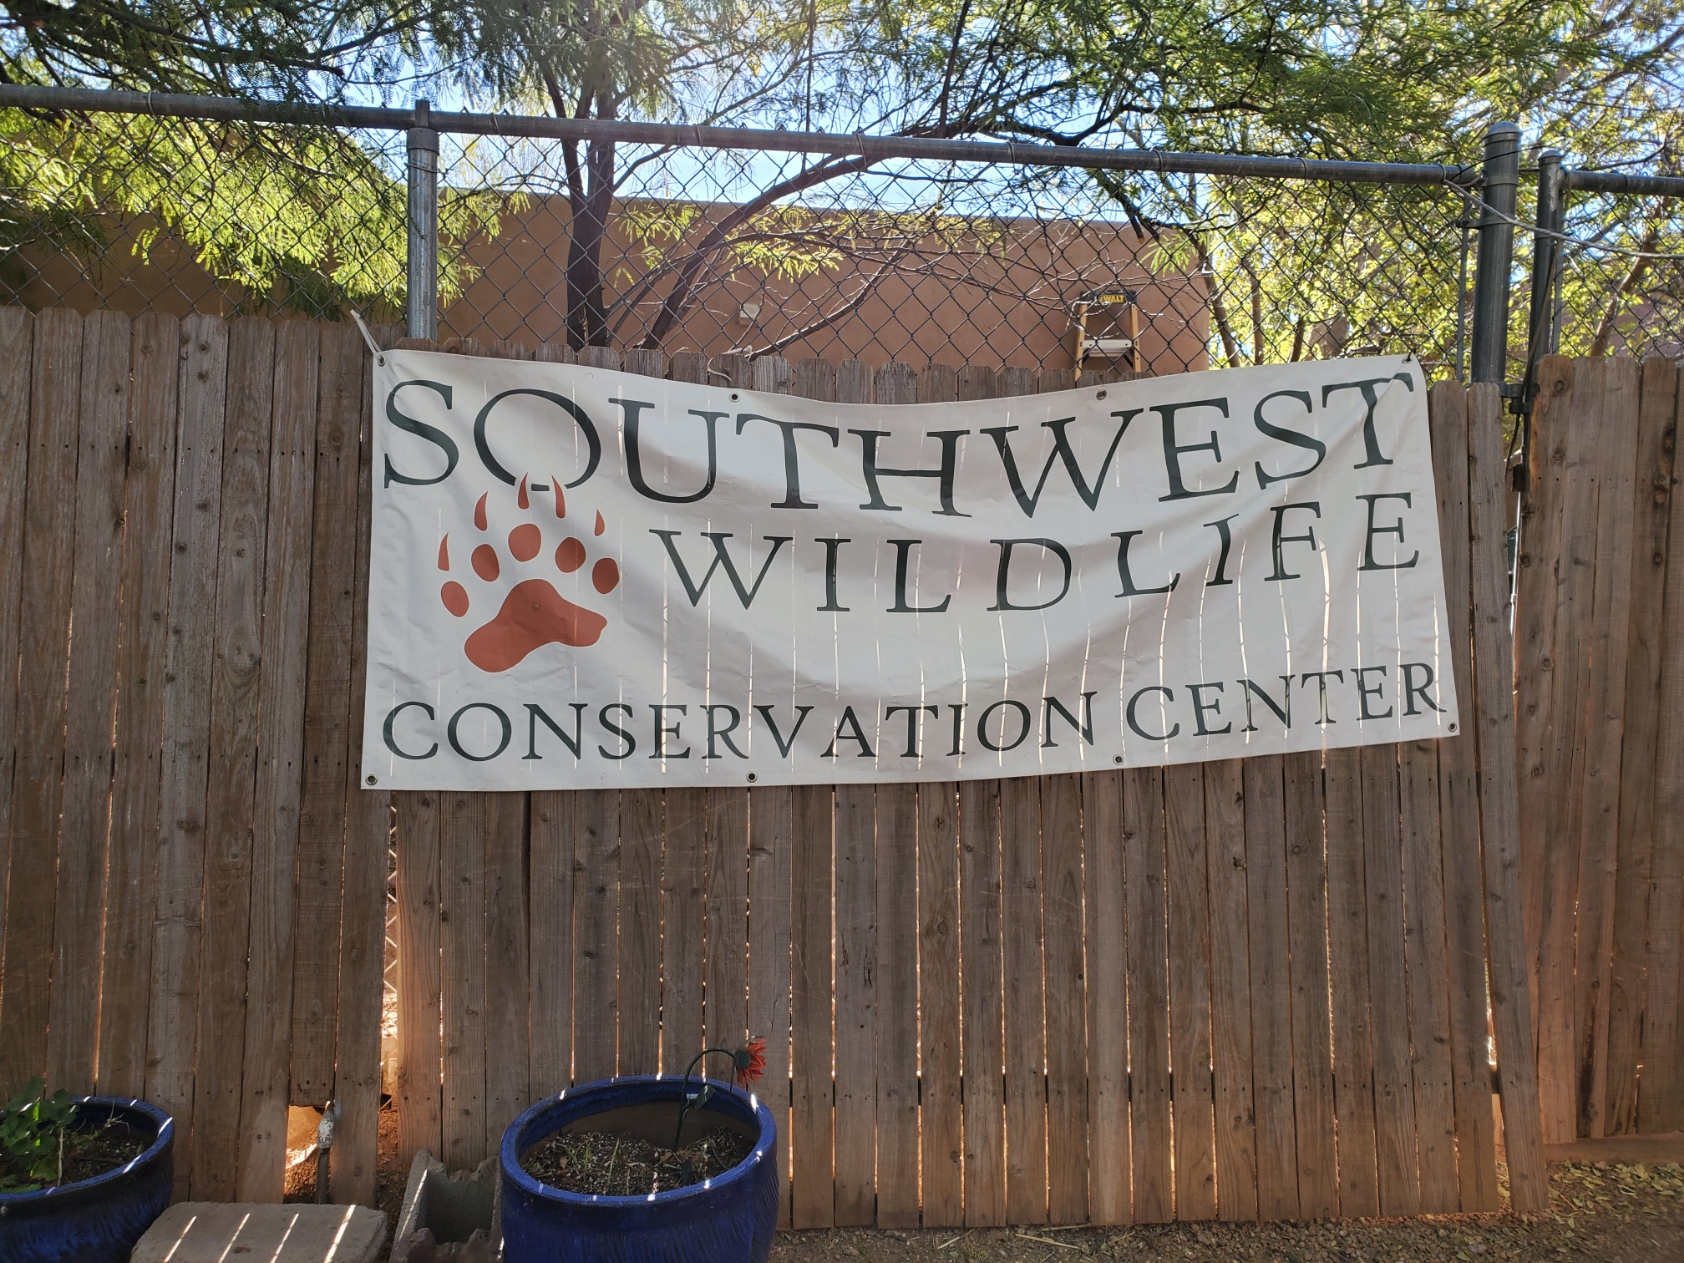 Southwest Wildlife Conservation Center of Scottsdale Arizona